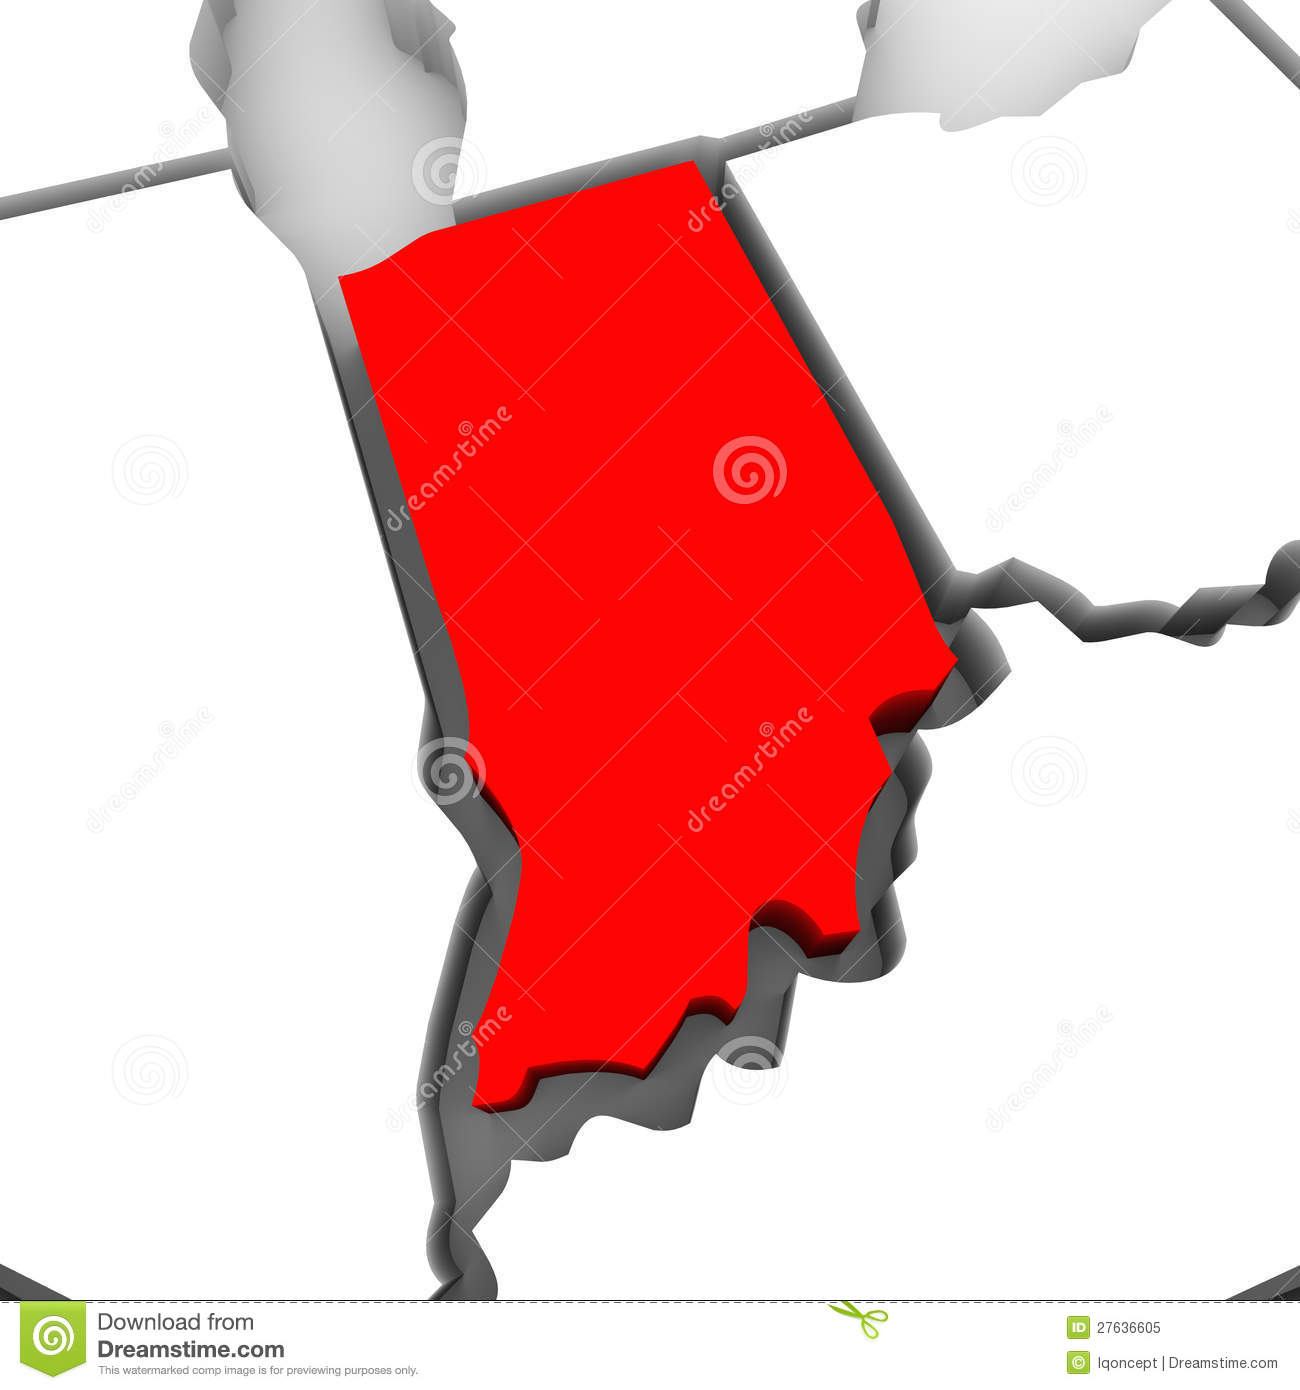 Red state map clipart banner transparent Indiana Red Abstract 3D State Map United States America Royalty ... banner transparent